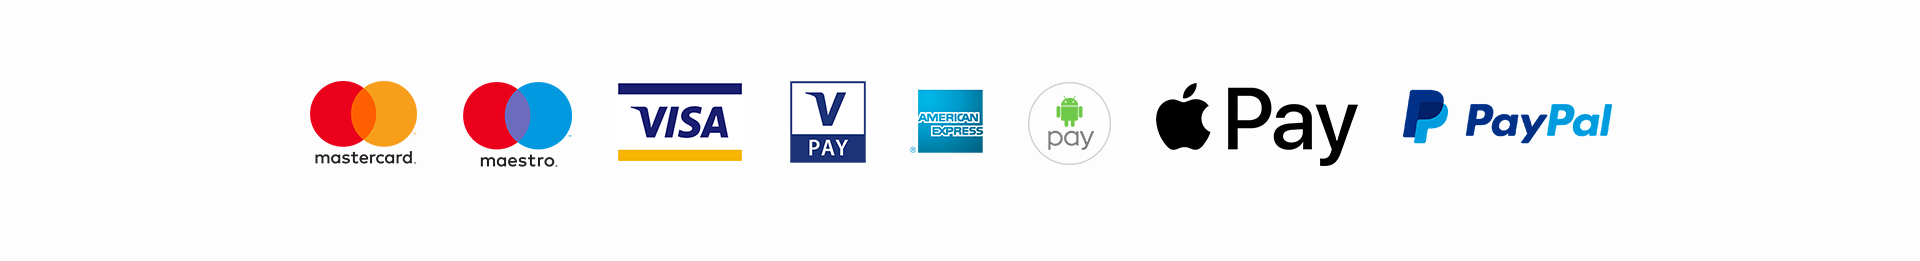 Pagamenti accettati Loomen - Mastercard Maestro Visa VPay American Express Android Pay Apple Pay Paypal